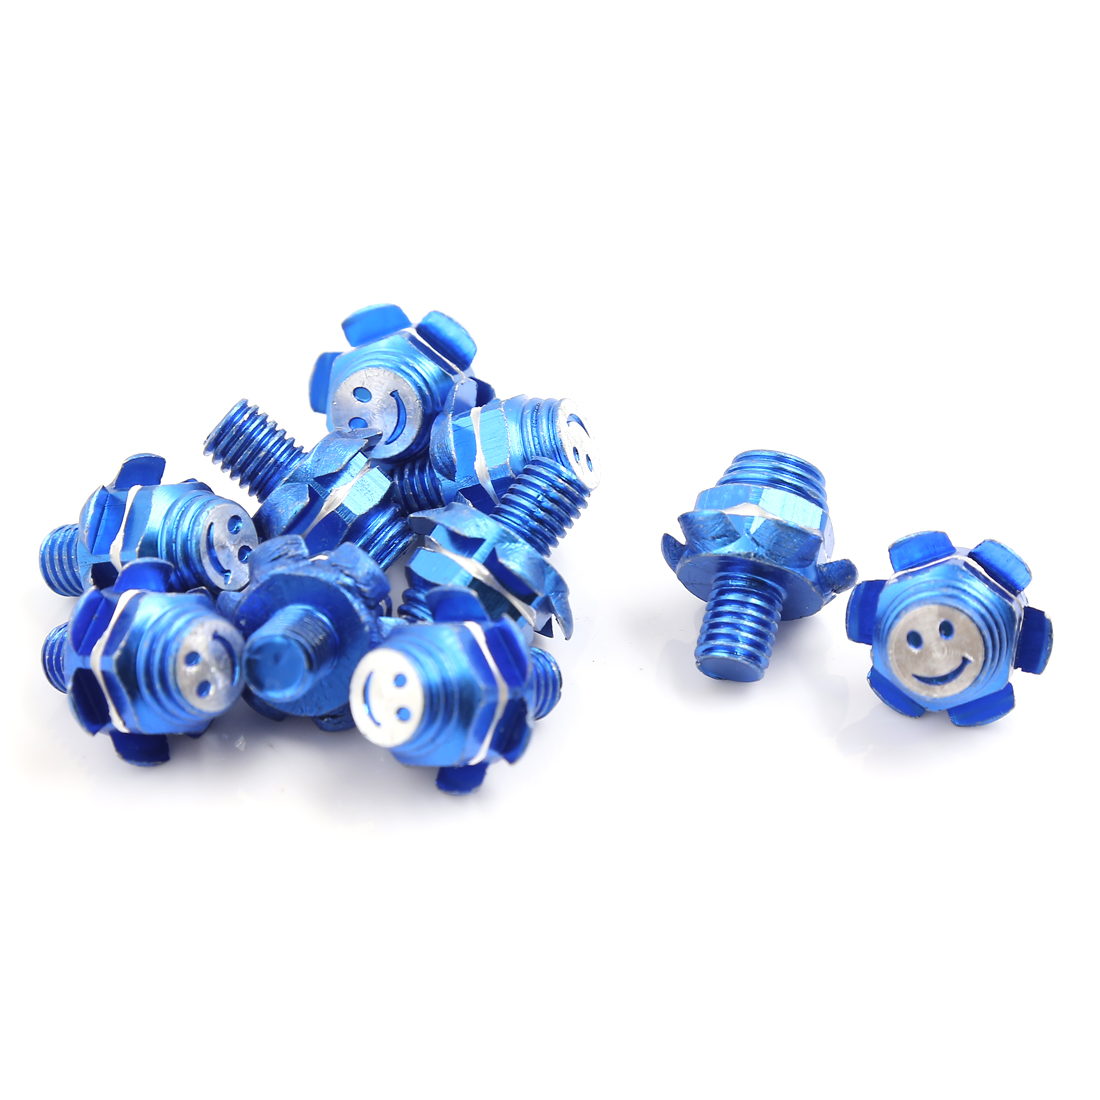 10 Pcs Blue Flower Shaped Motorcycle Car License Plate Frame Bolts Screws 8mm Thread Dia